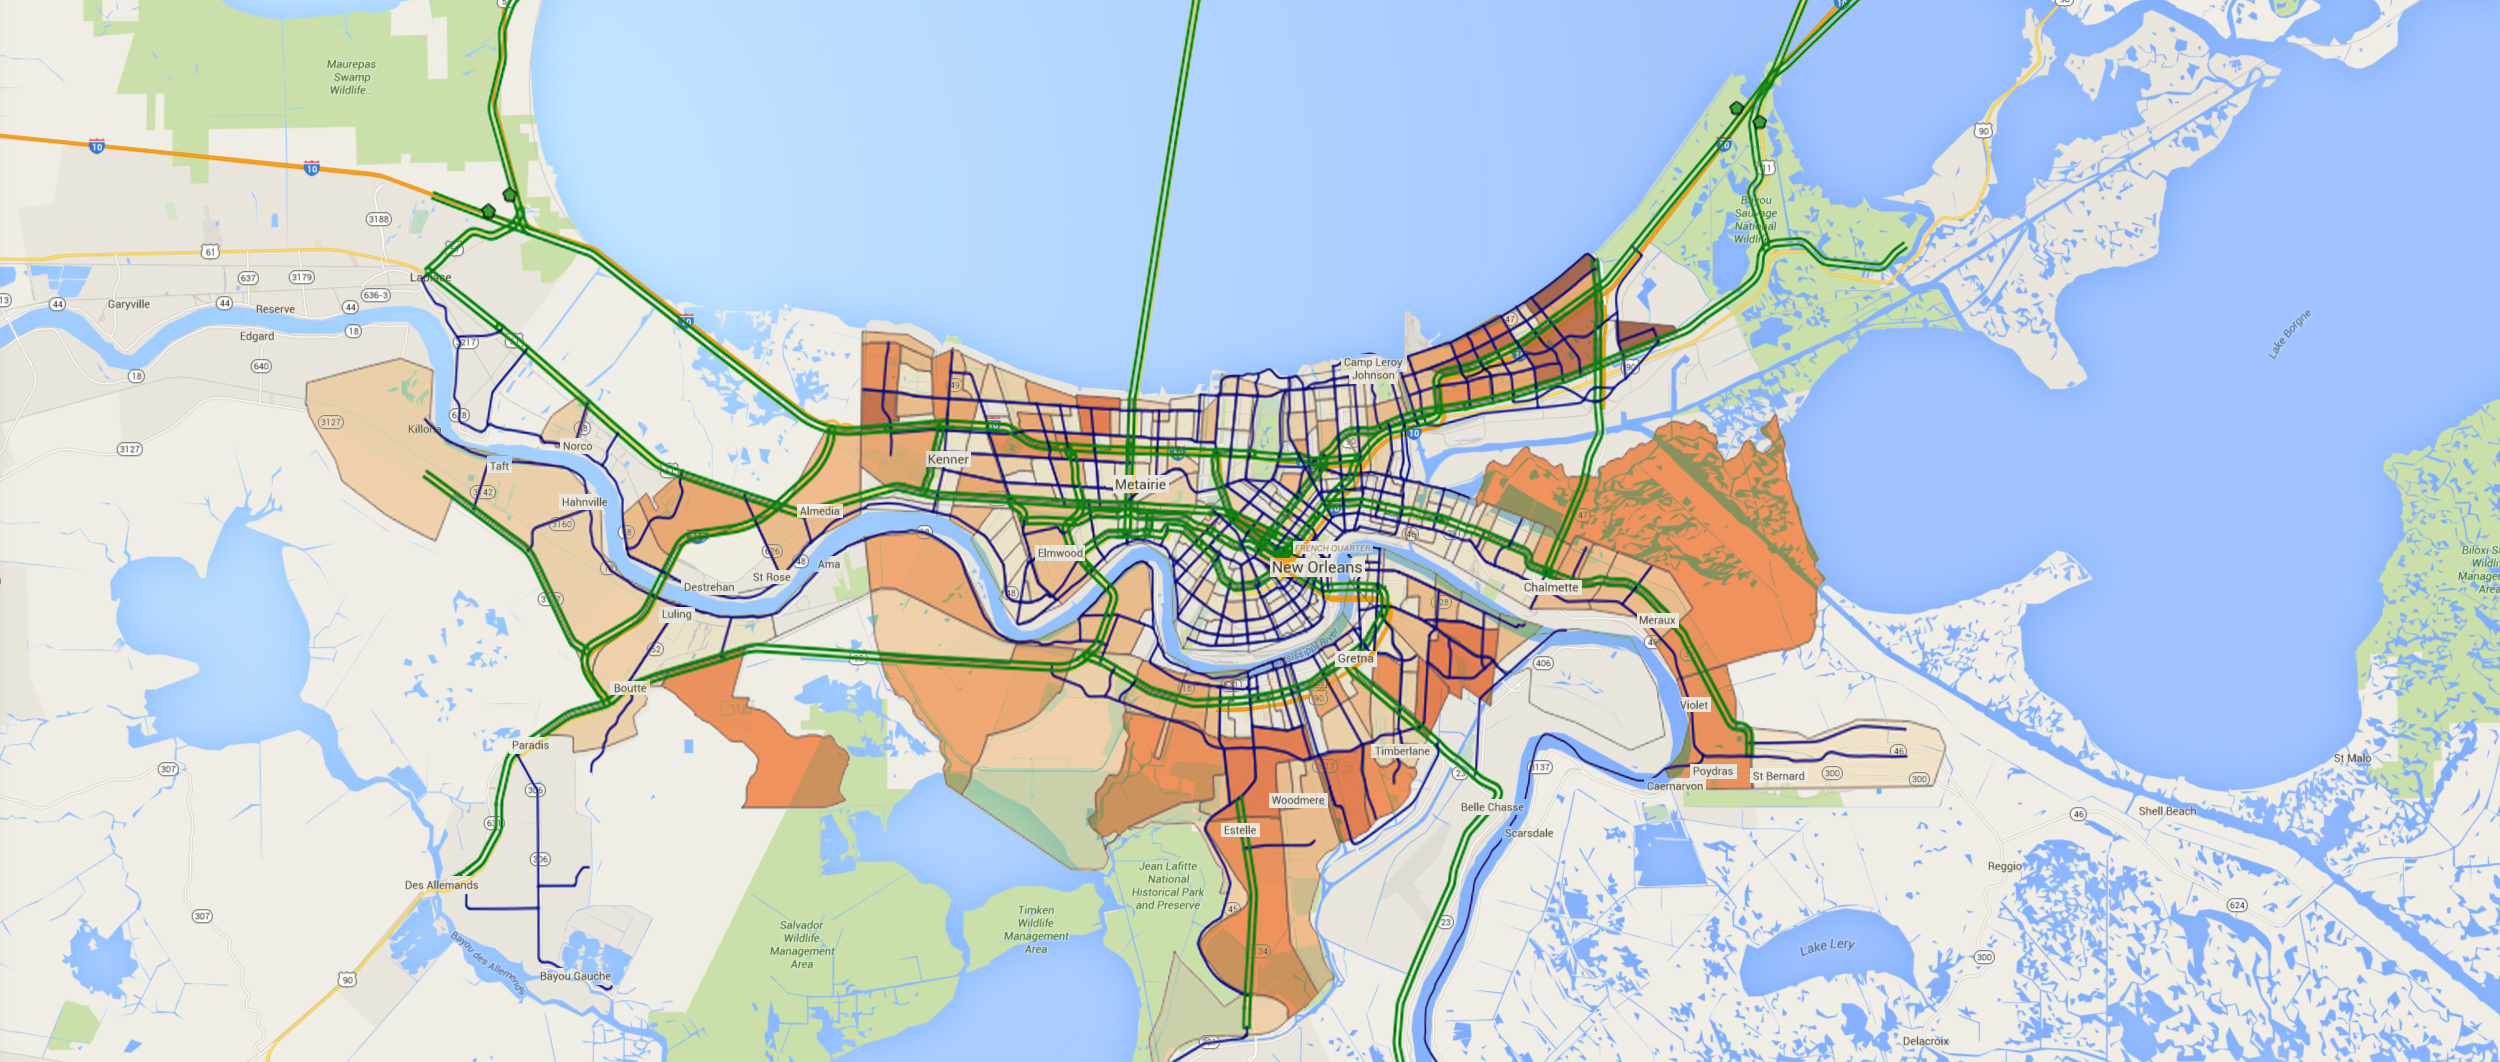 This map of New Orleans shows the sectors created by the optimized evacuation plan. Blue lines indicate secondary roads used in evacuation routes. Green lines indicate roads used as one-way contraflow evacuation routes. The orange shading indicates population density, with darker shading indicating greater density. Image courtesy: Pascal Van Hentenryck and K'Kio Hardin